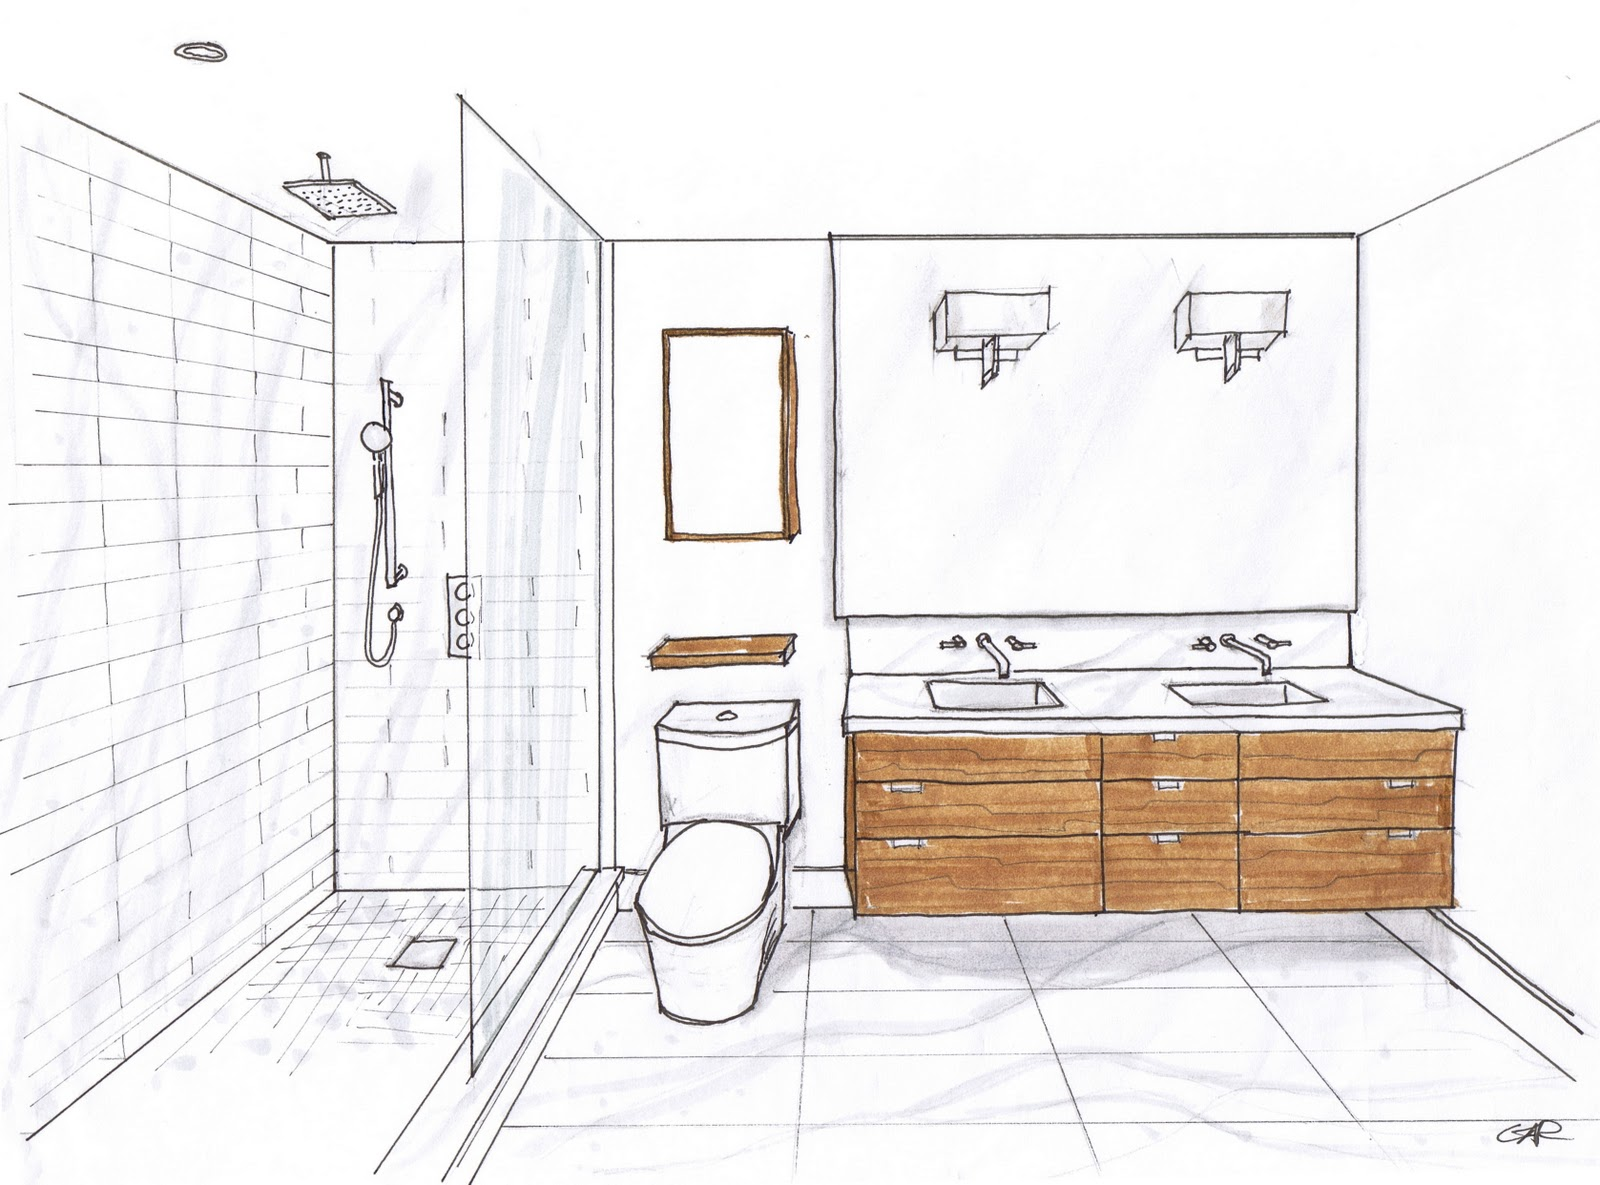 Creed 70 39 s bungalow bathroom designs for Simple bathroom layout